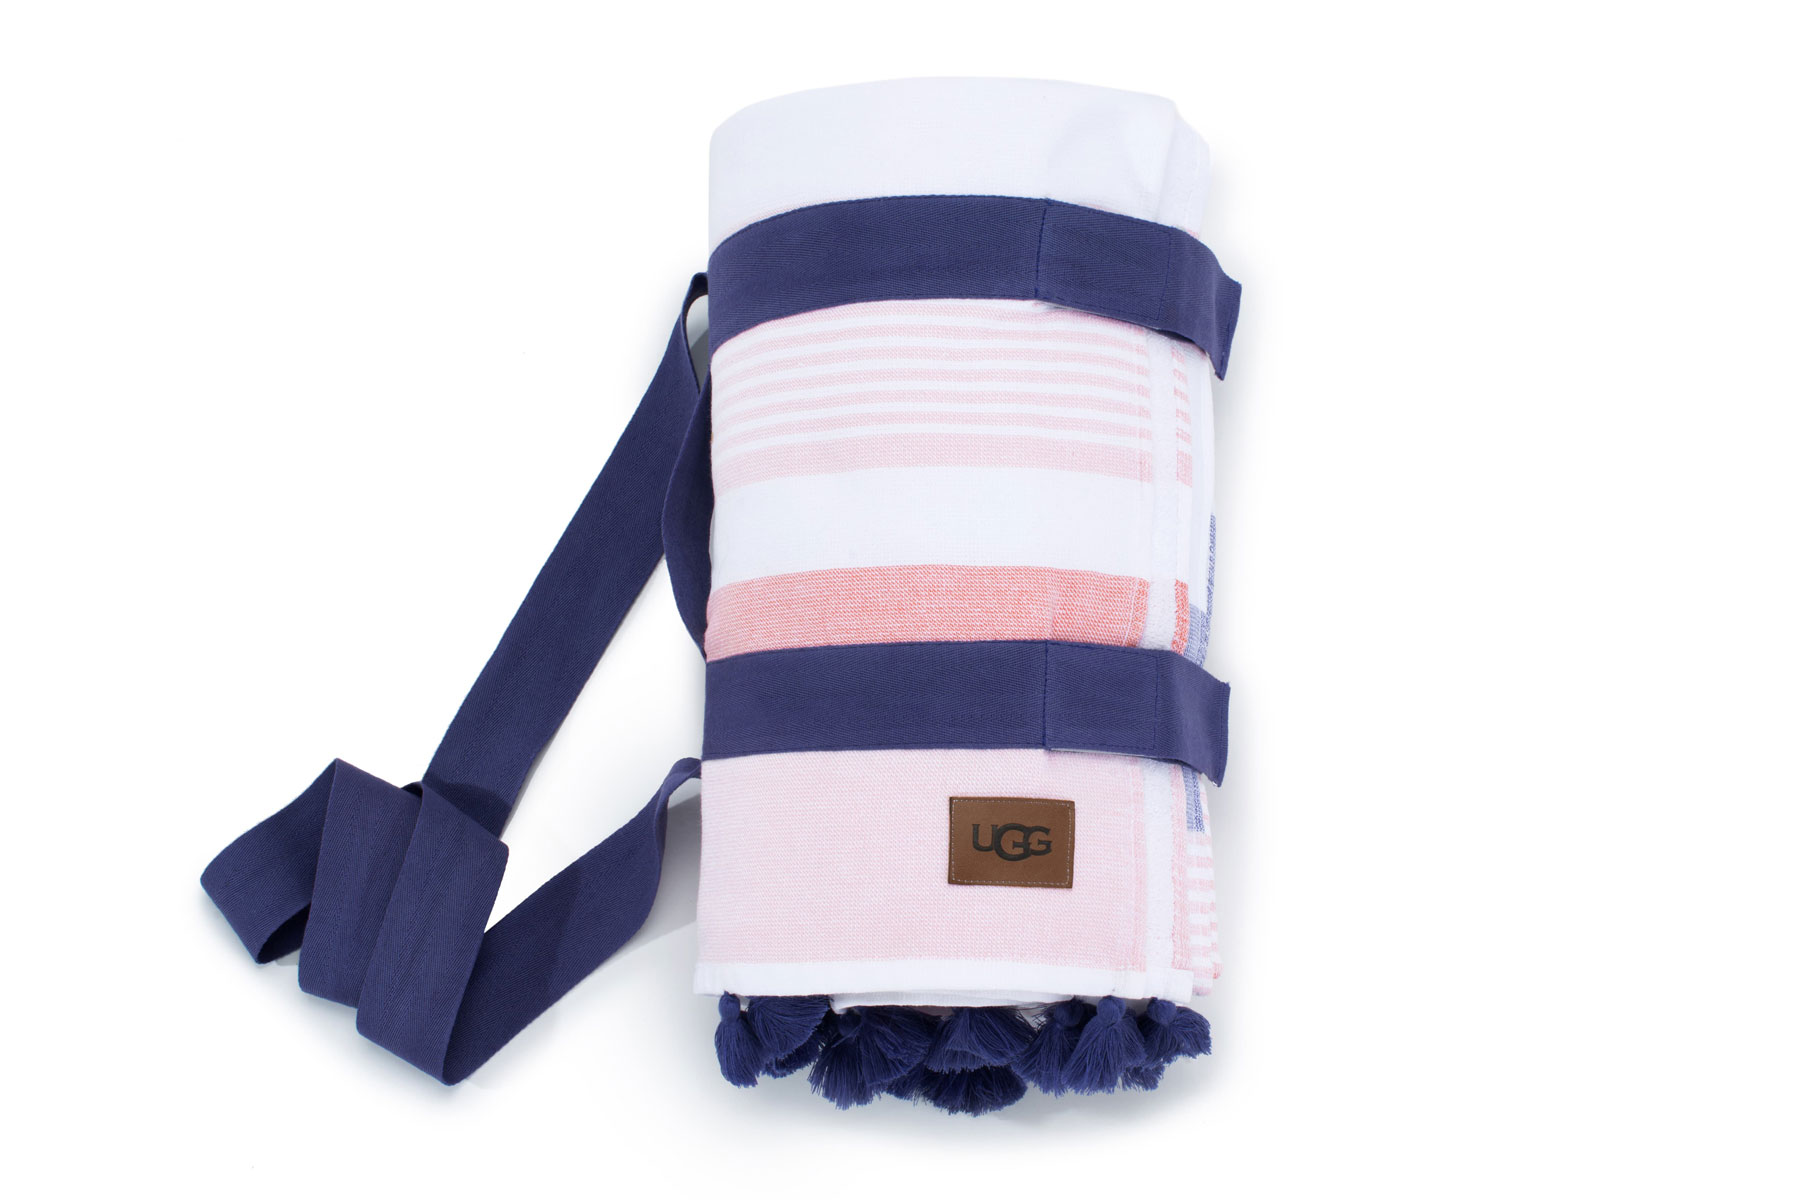 Pink and navy striped beach towel